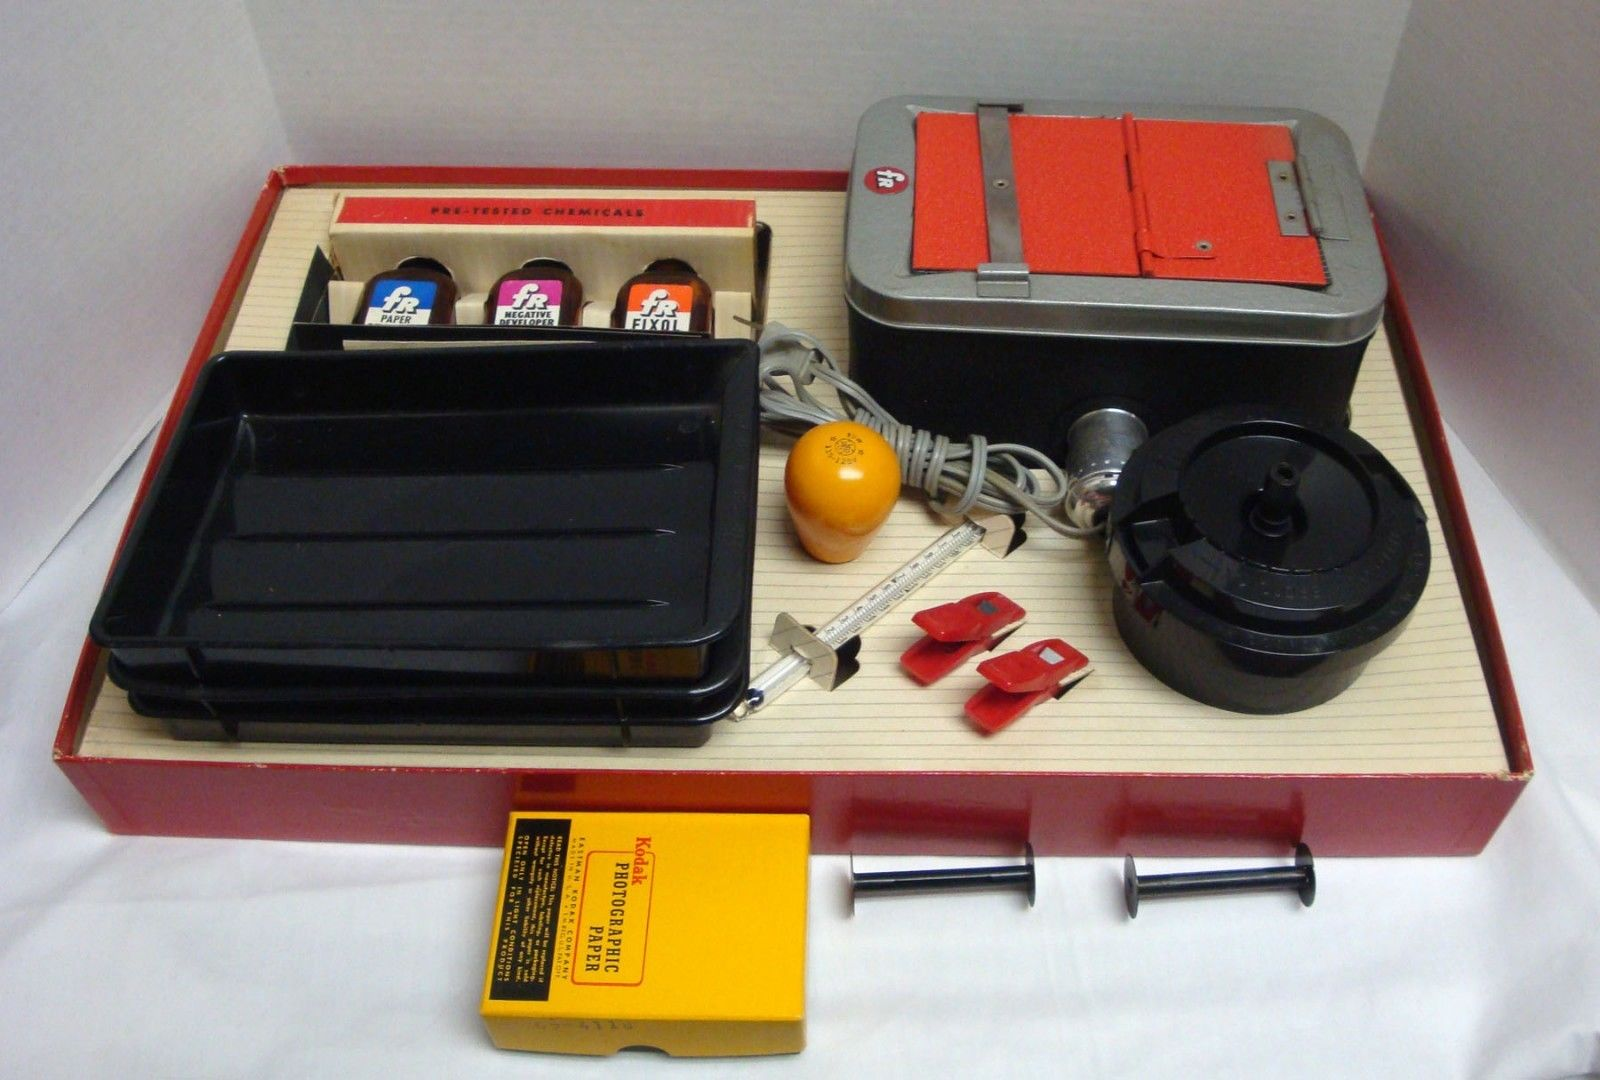 the FR darkroom kit